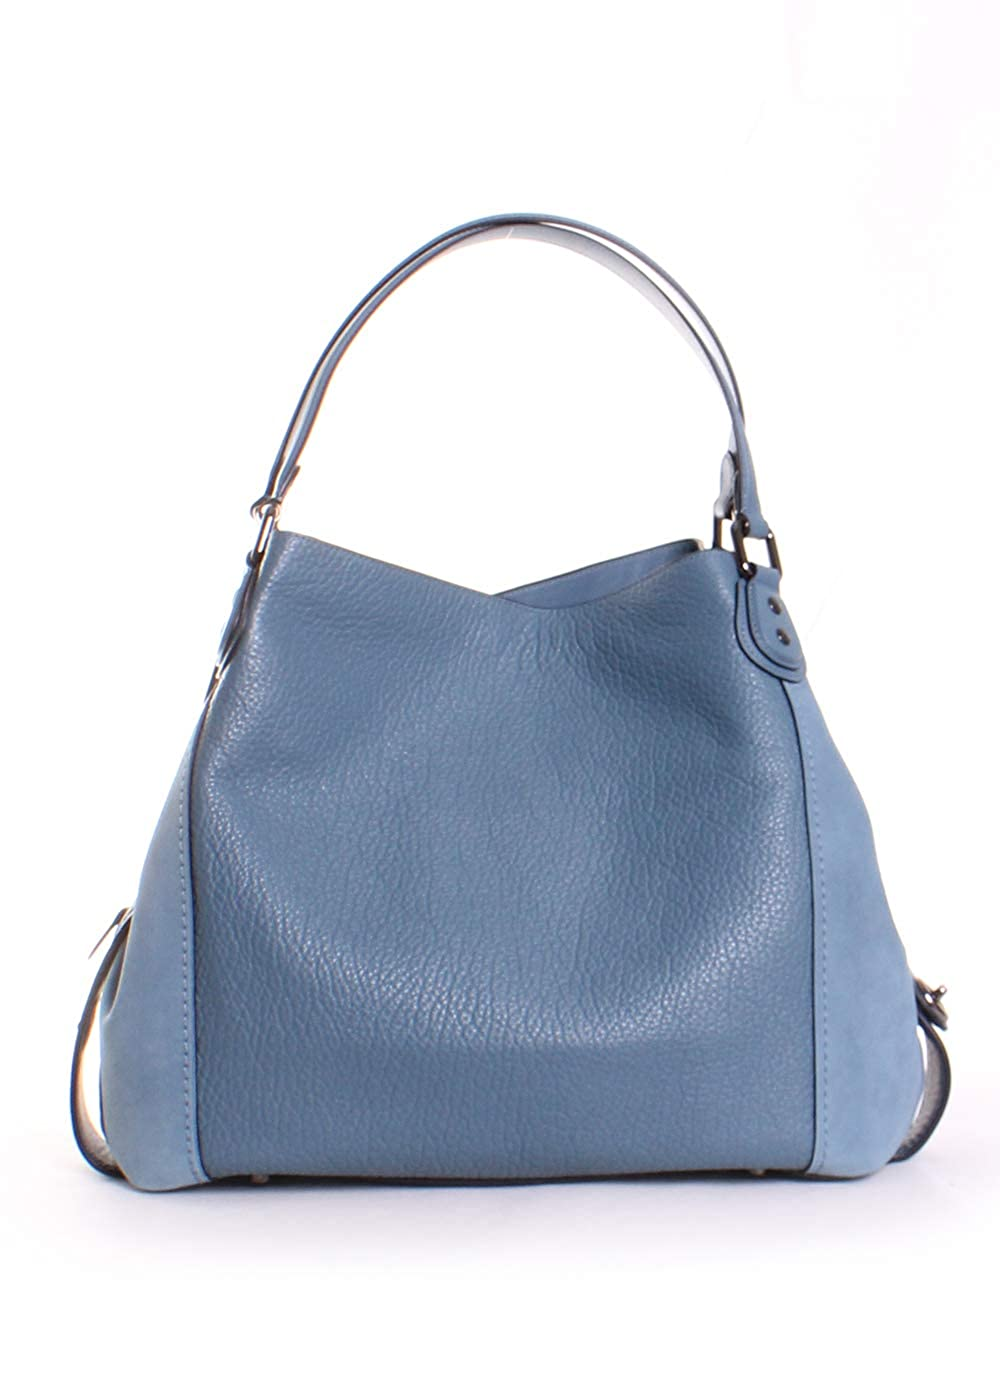 34f0ccc2 Amazon.com: Coach Edie Shoulder Bag 42 in Dark Gunmetal/Chambray ...